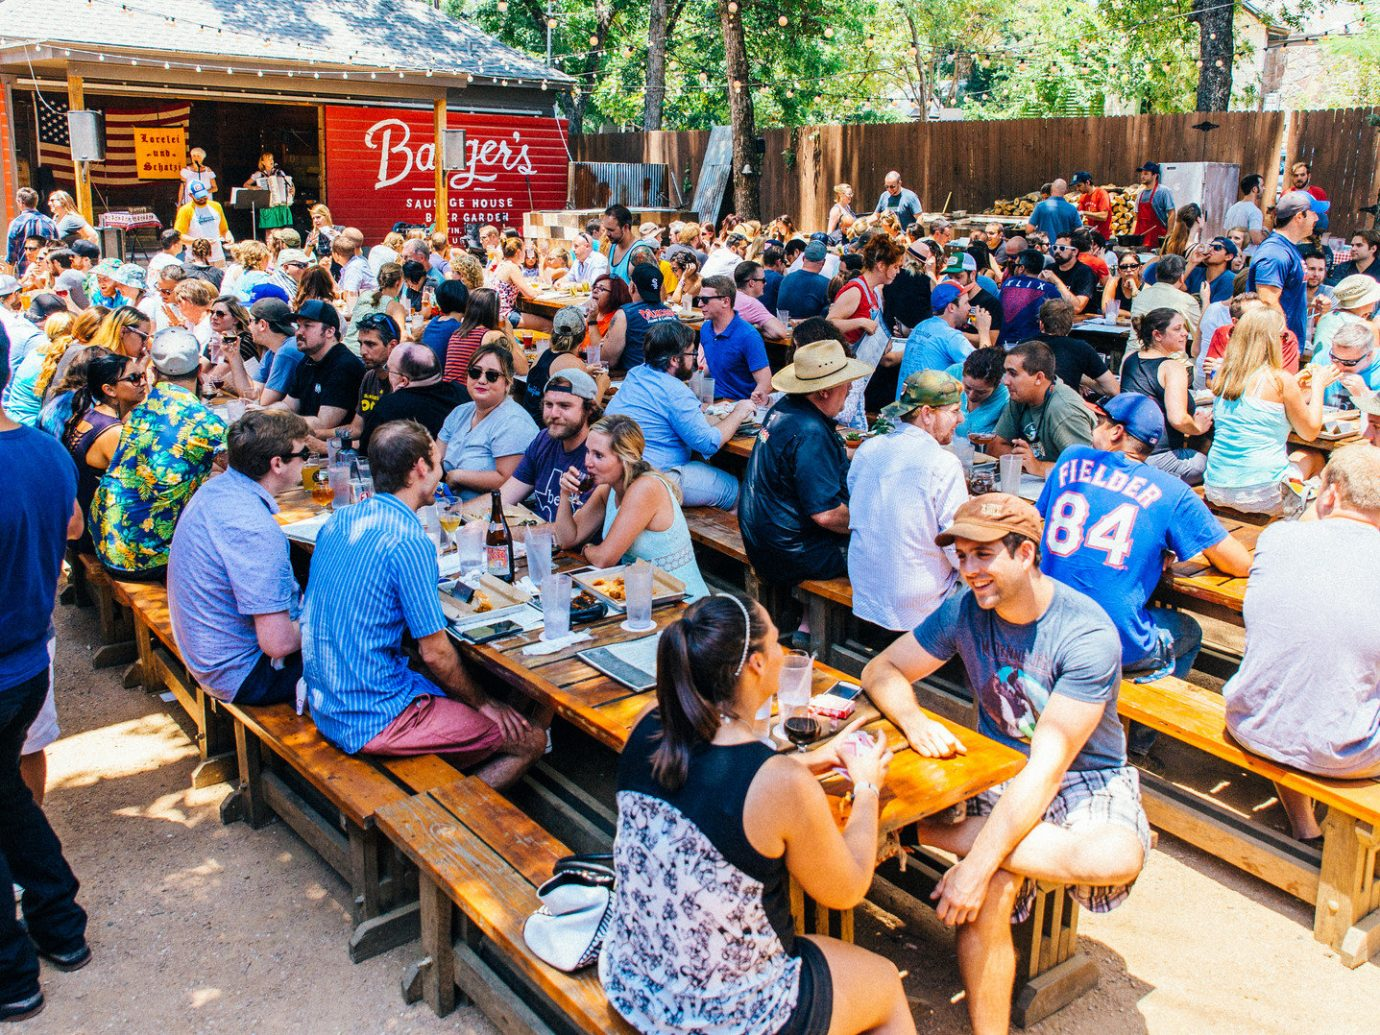 Austin beer garden crowd Food + Drink Girls Getaways outdoor dining Patio people Terrace Texas Trip Ideas Weekend Getaways person social group outdoor scene group youth community